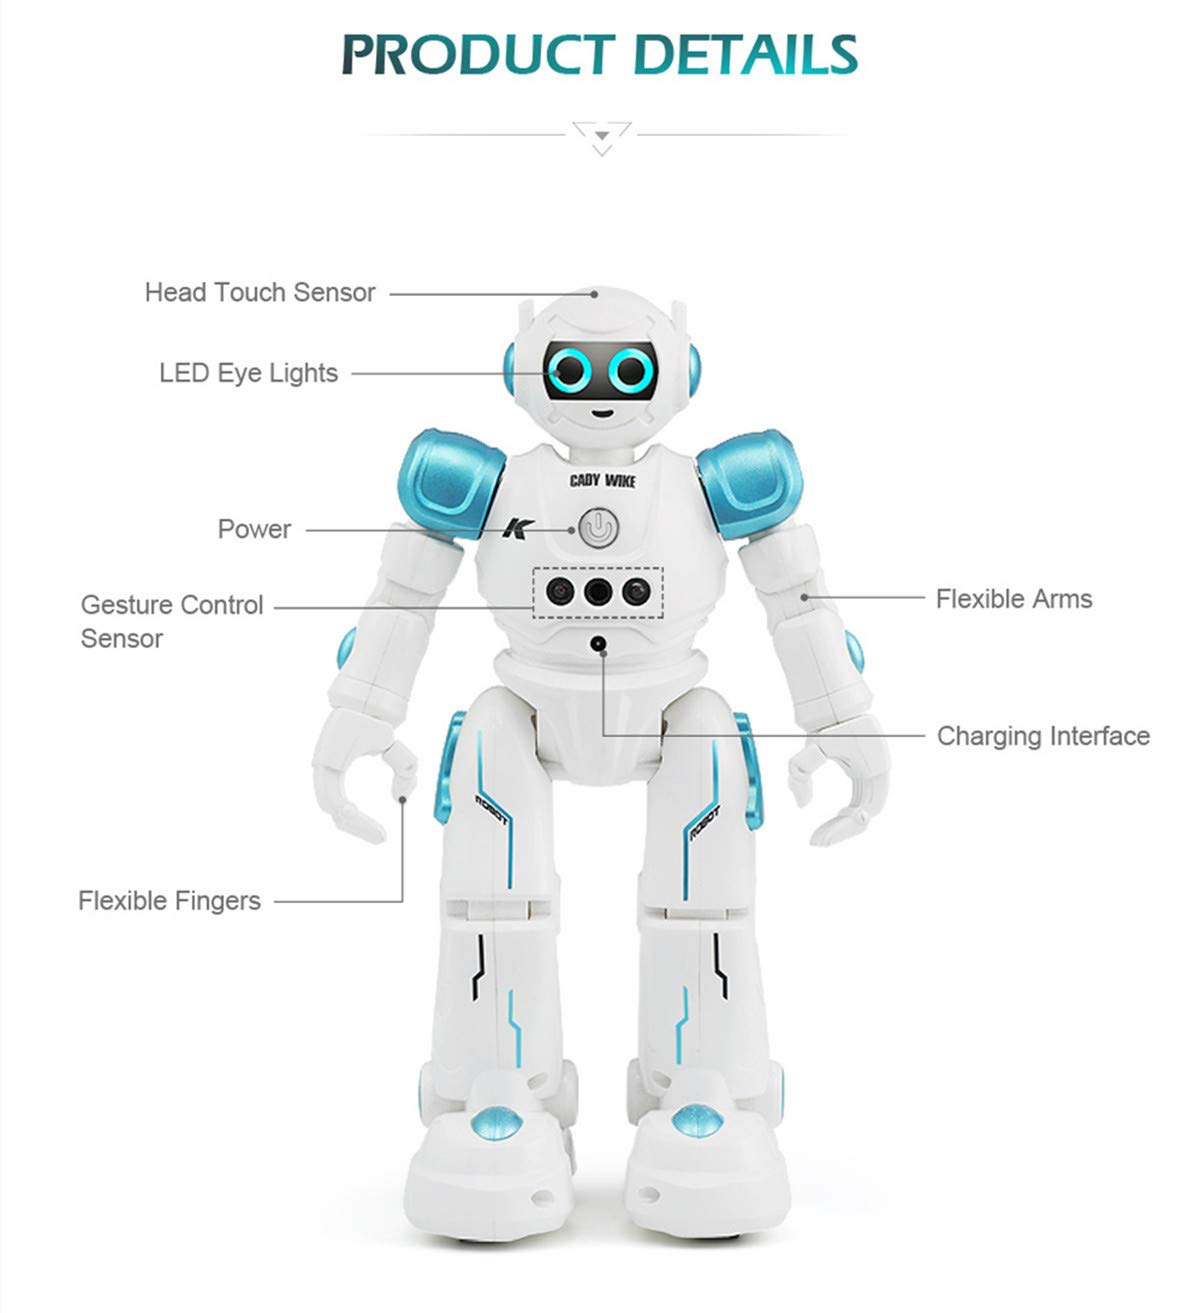 WEECOC Smart Robot Toys Gesture Control Remote Control Robot Kids Toys Birthday Can Singing Dancing Speaking Two Walking Models (Blue) by WEECOC (Image #9)